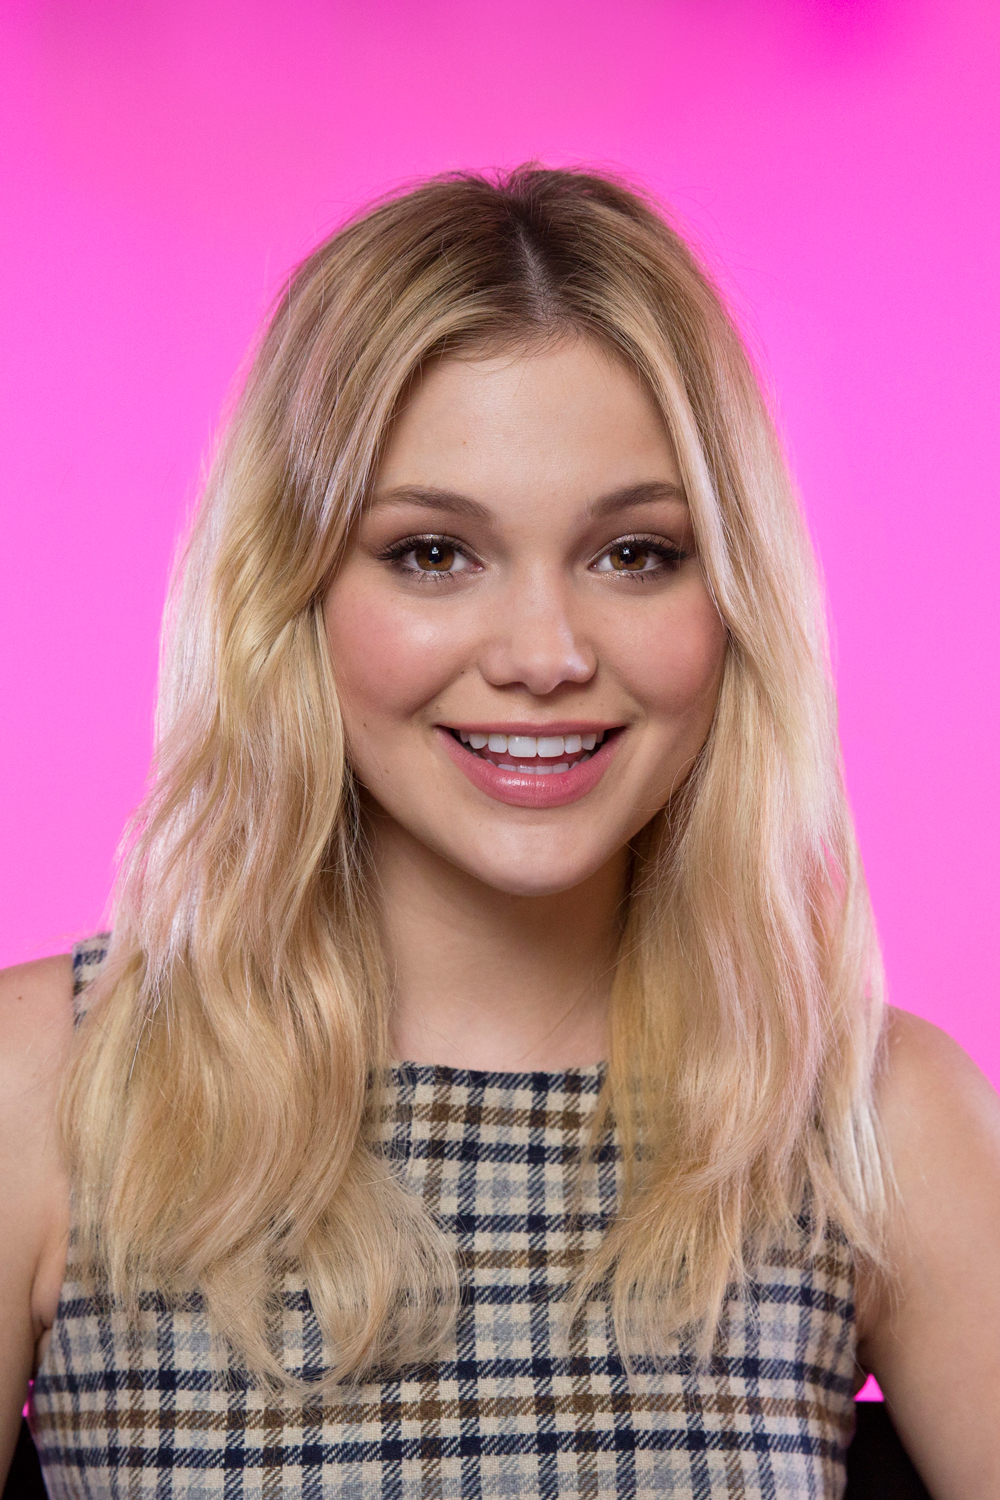 Olivia Holt Photographed for Teen Vogue Video